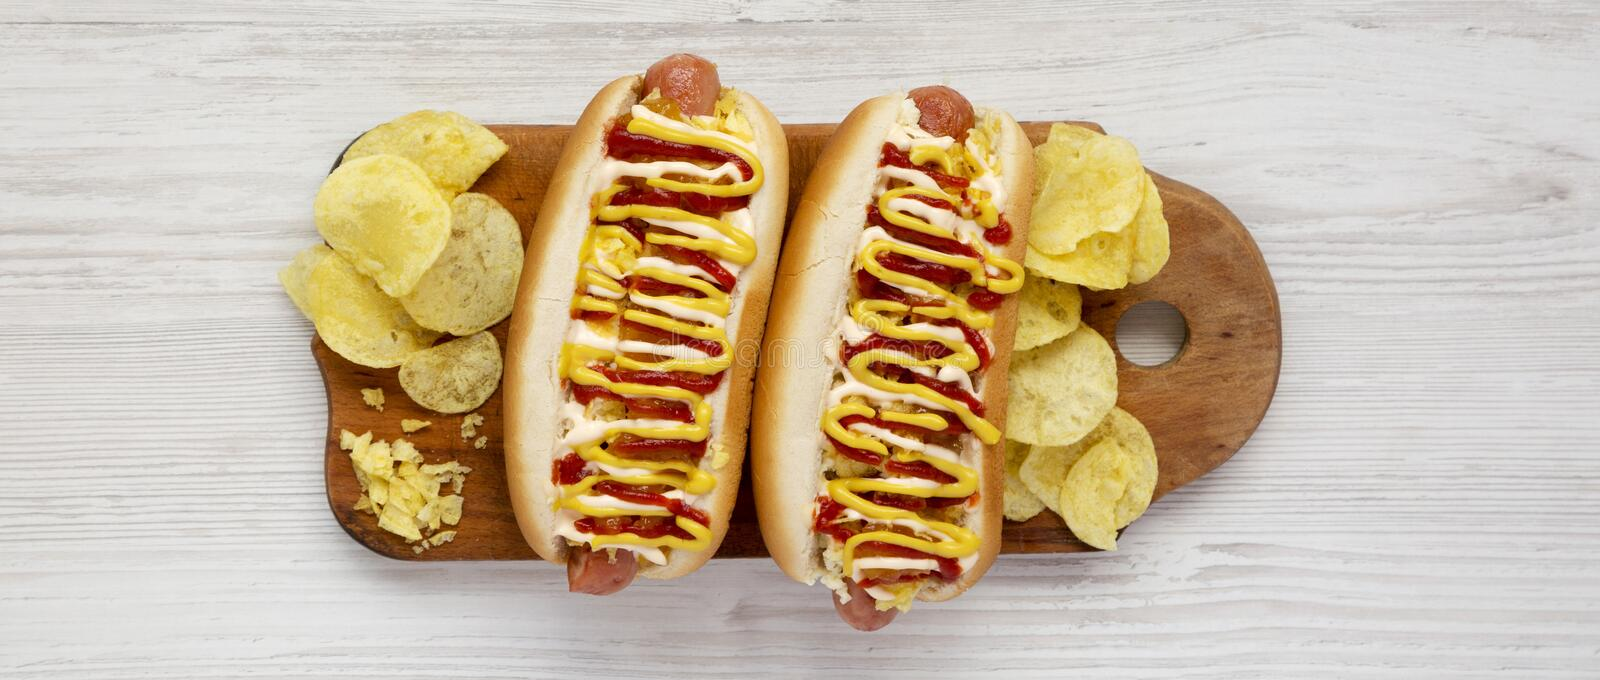 Homemade colombian hot dogs with pineapple sauce, yellow mustard and mayo ketchup on a rustic wooden board. Flat lay, from above,. Top view. Close-up stock images